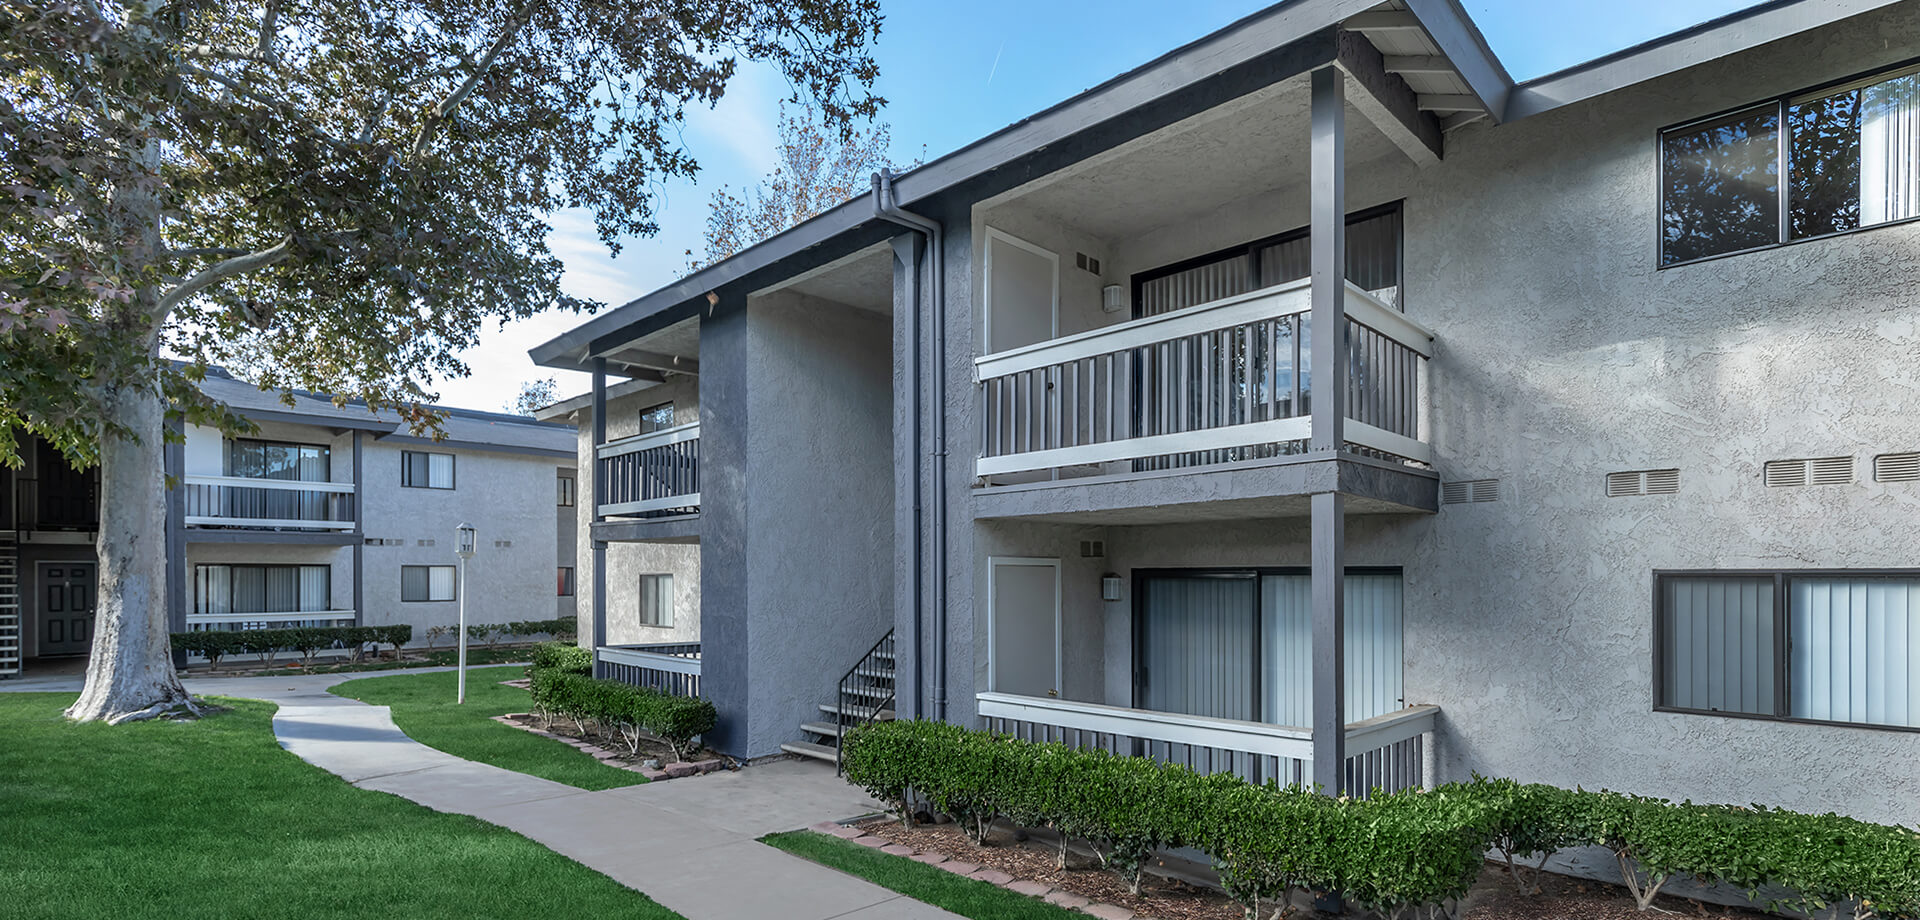 Montecito Apartments slideshow image 5